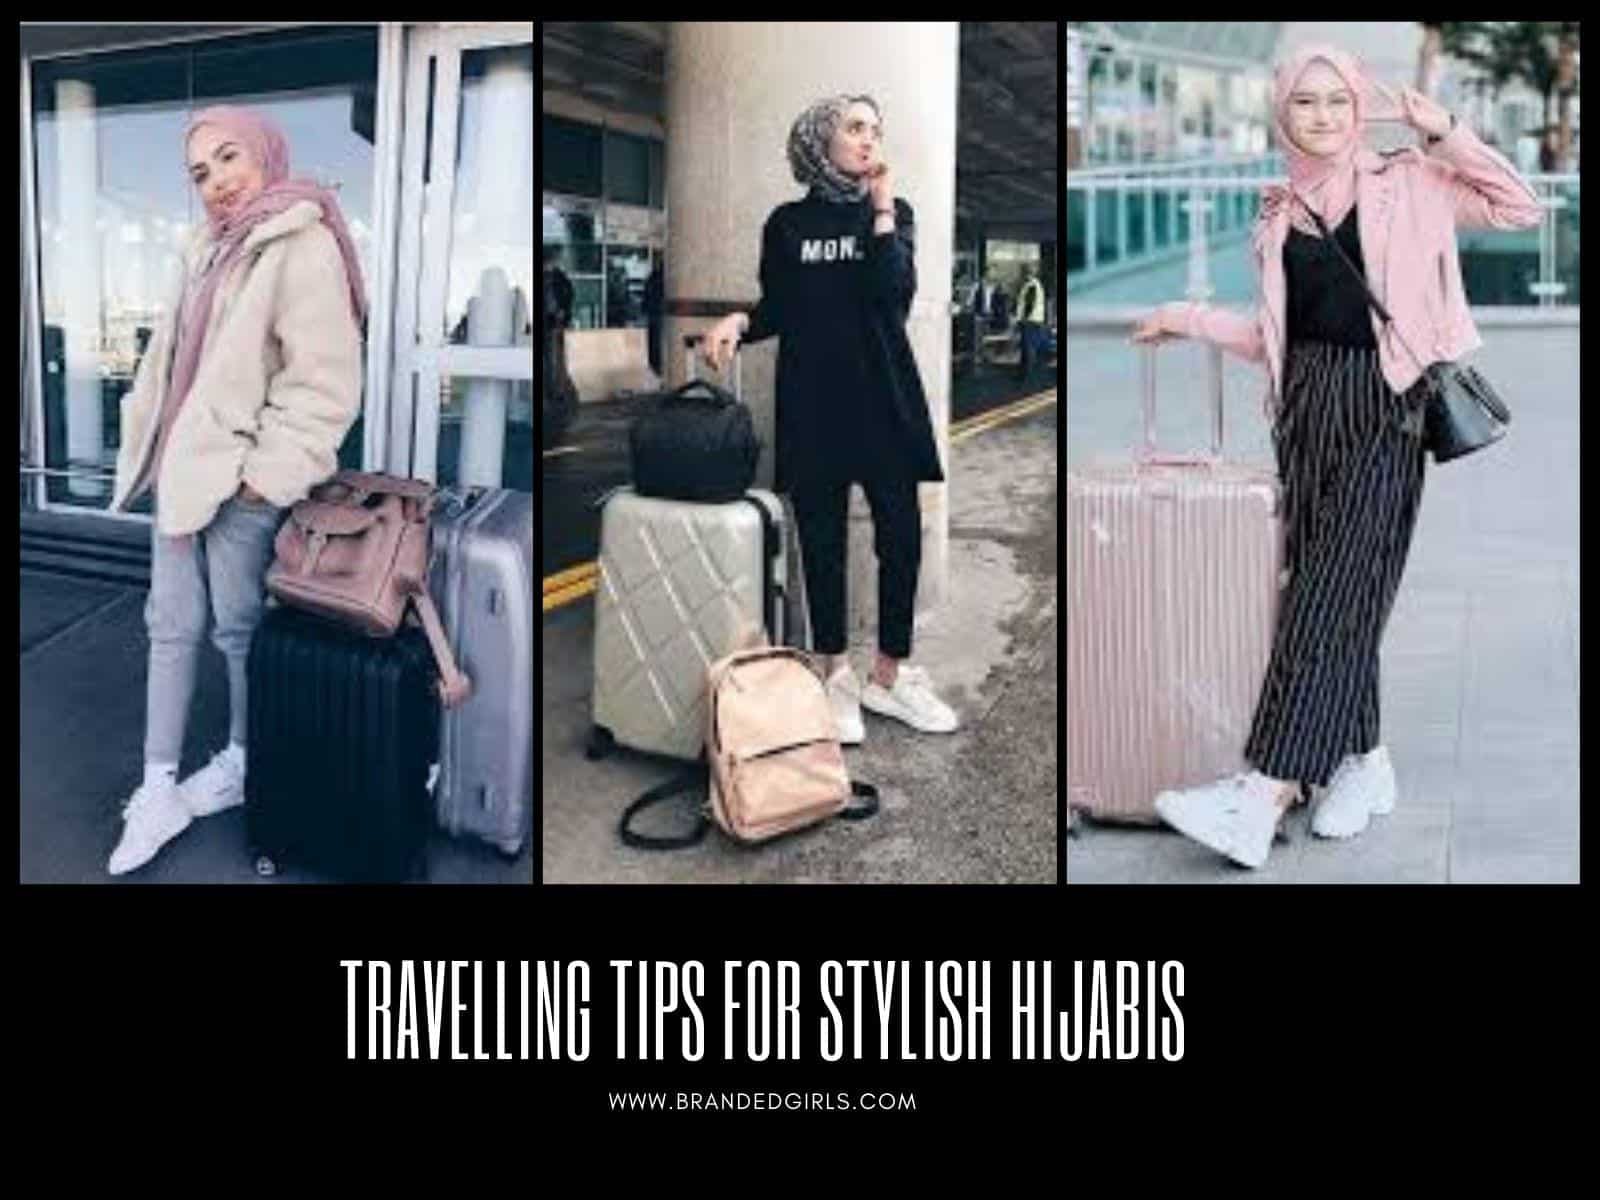 Travelling-Tips-for-Stylish-Hijabis Travelling in Hijab - 20 Travelling Tips for Stylish Hijabis